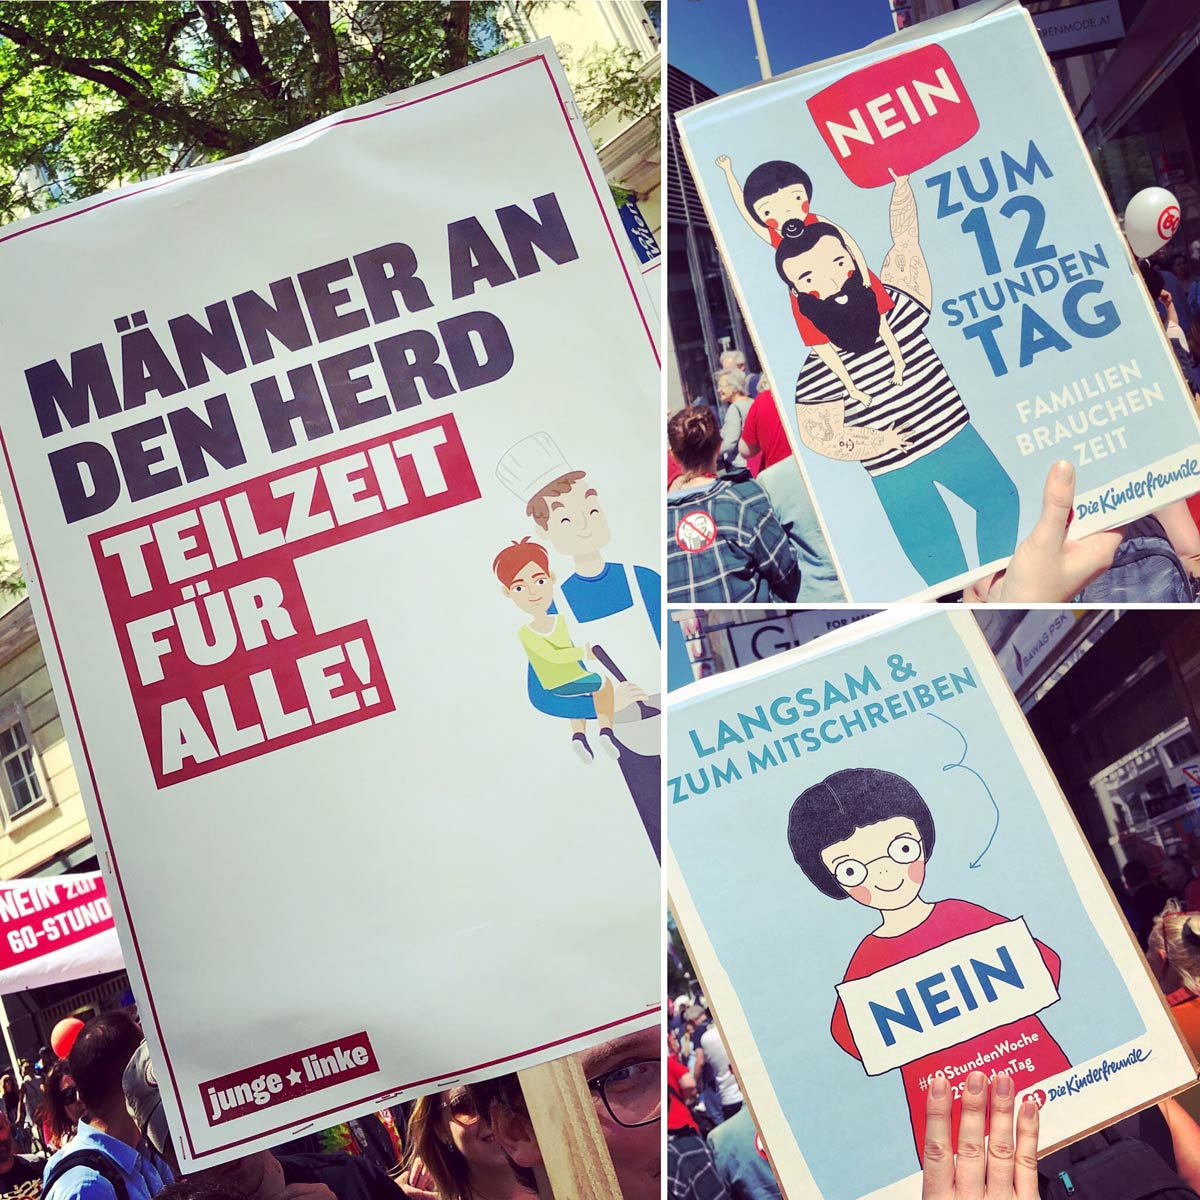 Impressionen von der Demonstration